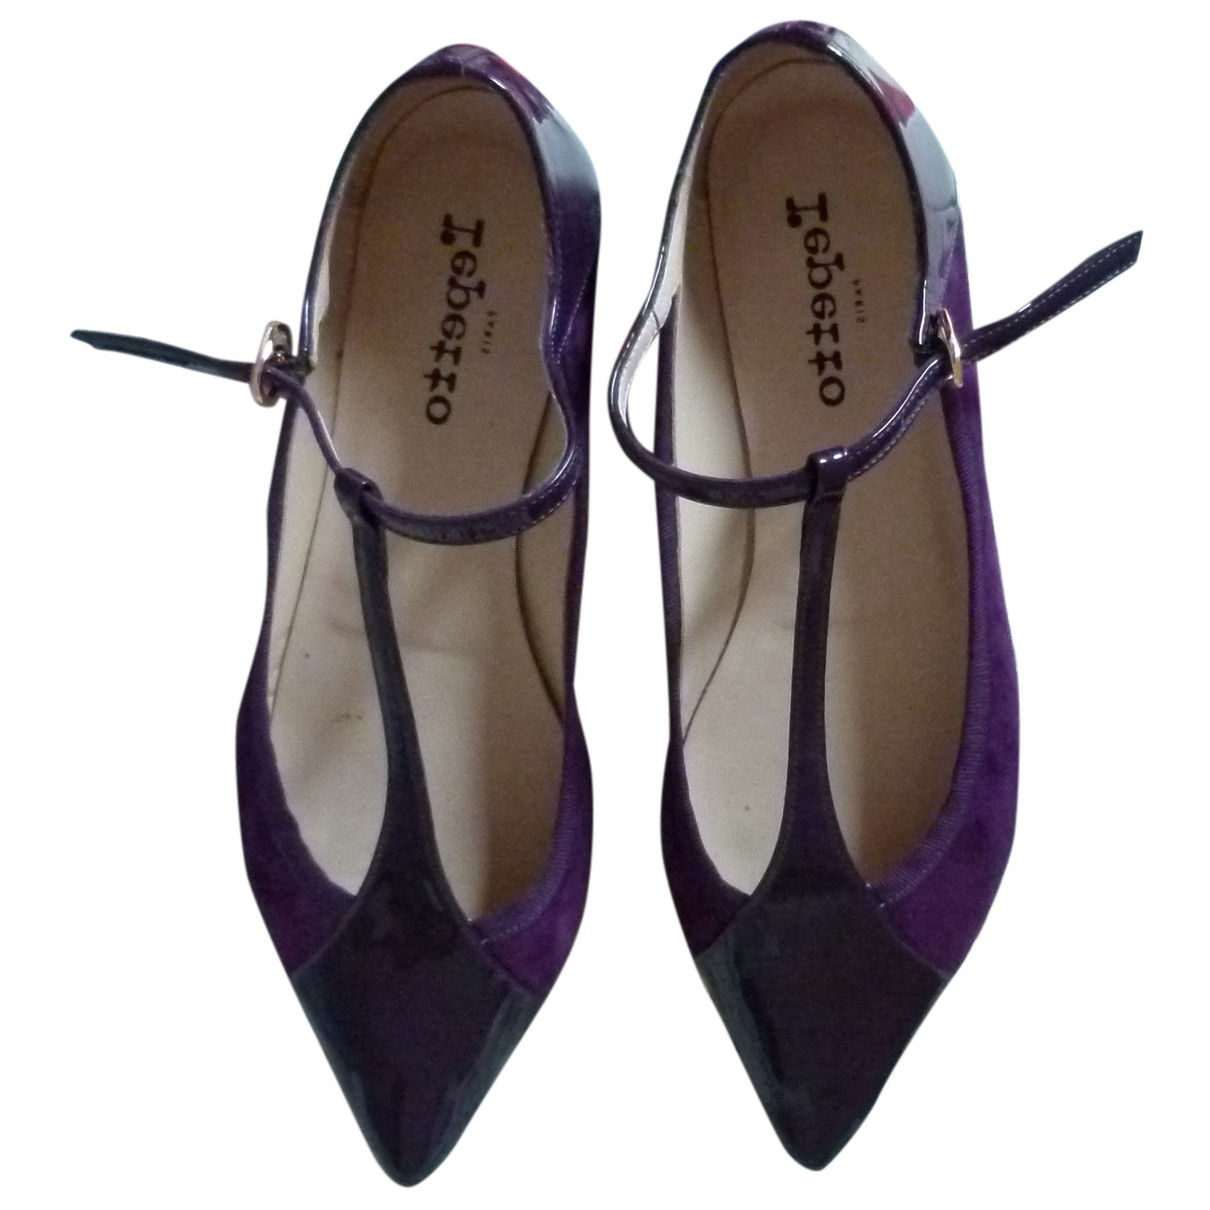 Repetto \N Schnuerschuhe in  Lila Lackleder